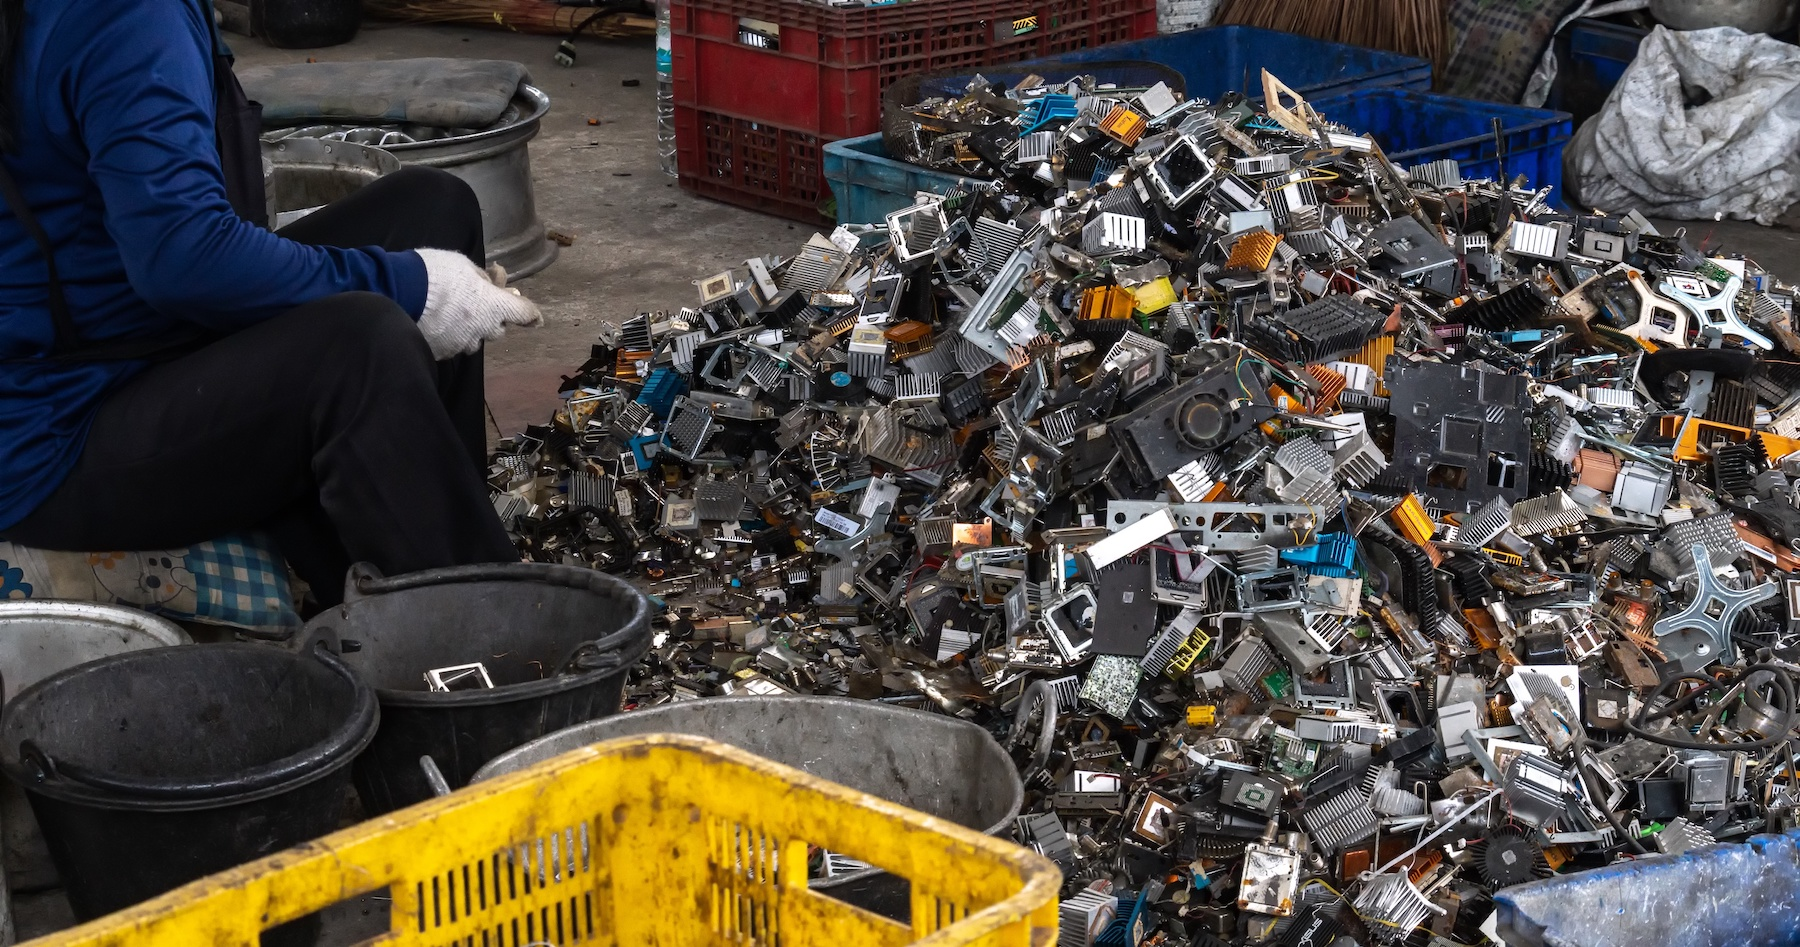 Scrap yard of electronic waste for recycling.